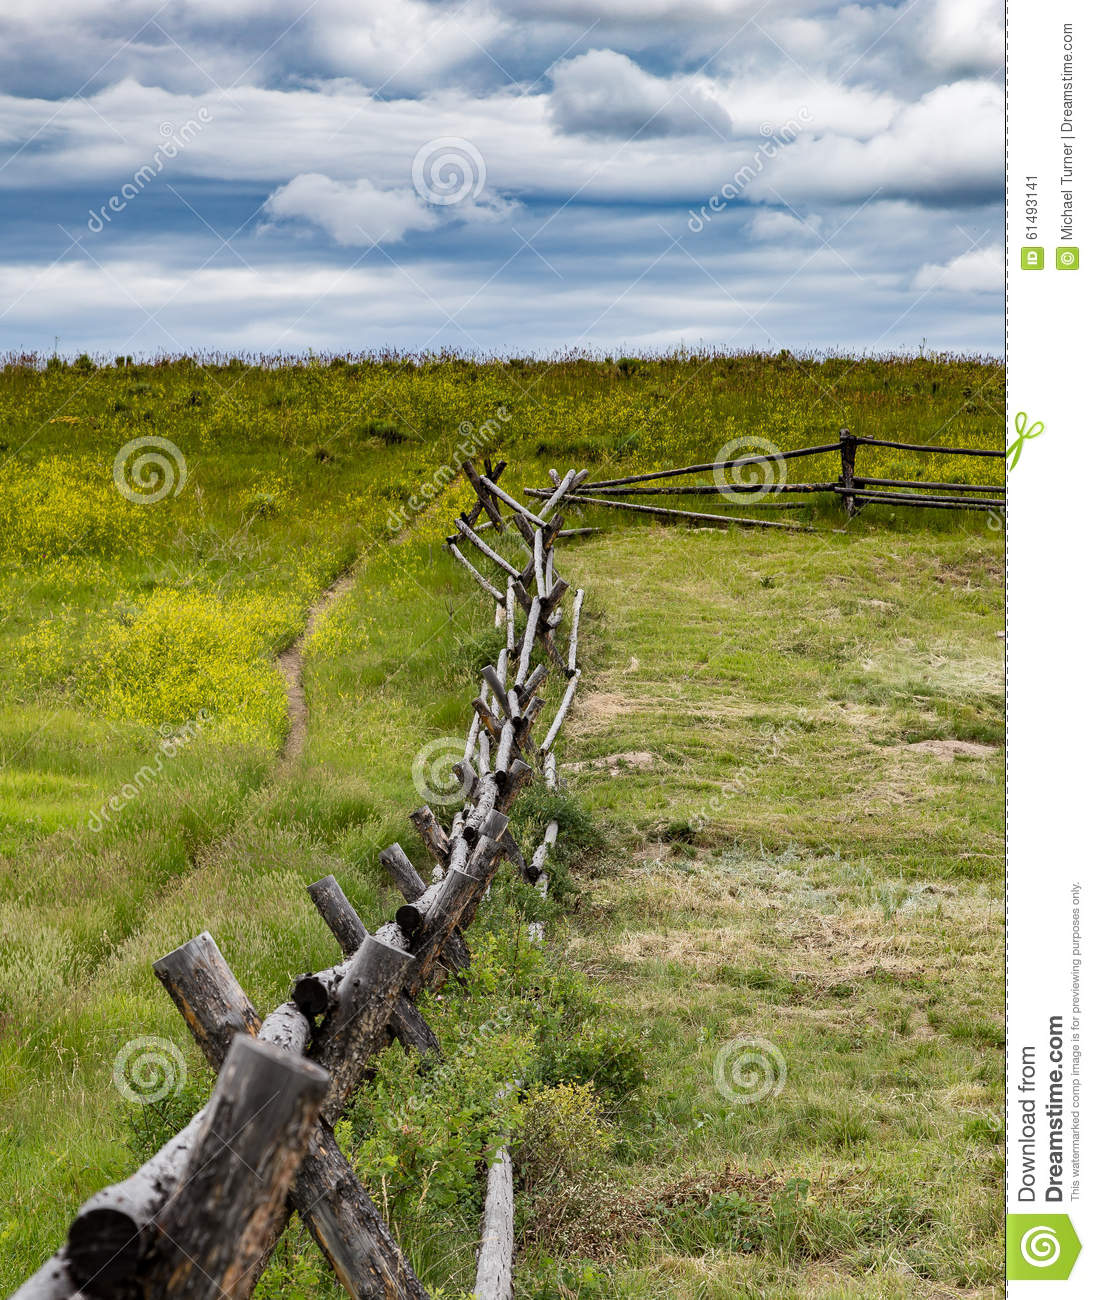 Rustic Fence in Wyoming